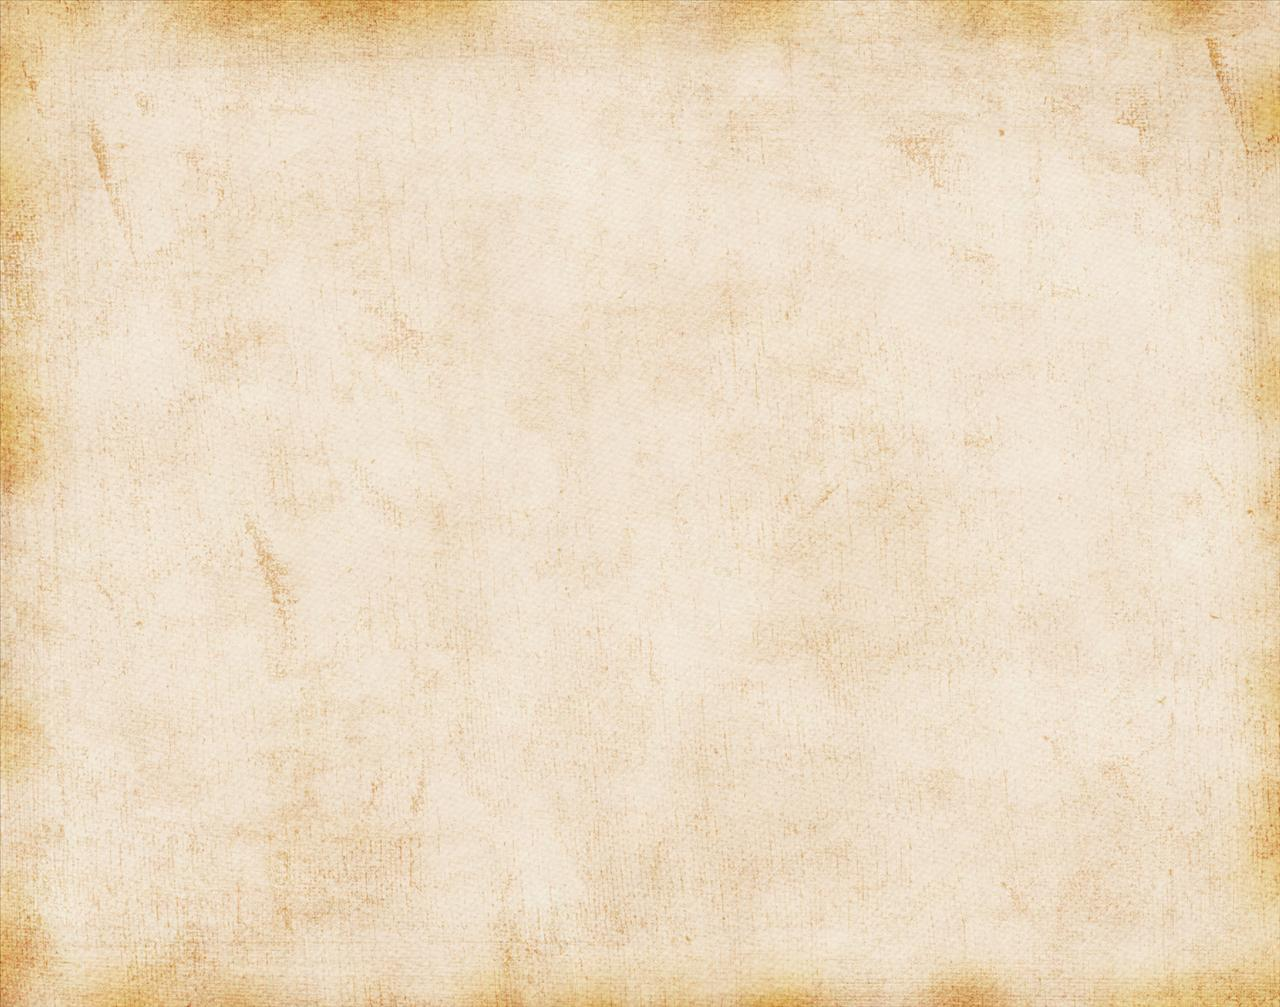 vintage-backgrounds-17559-18119-hd-wallpapers | Método